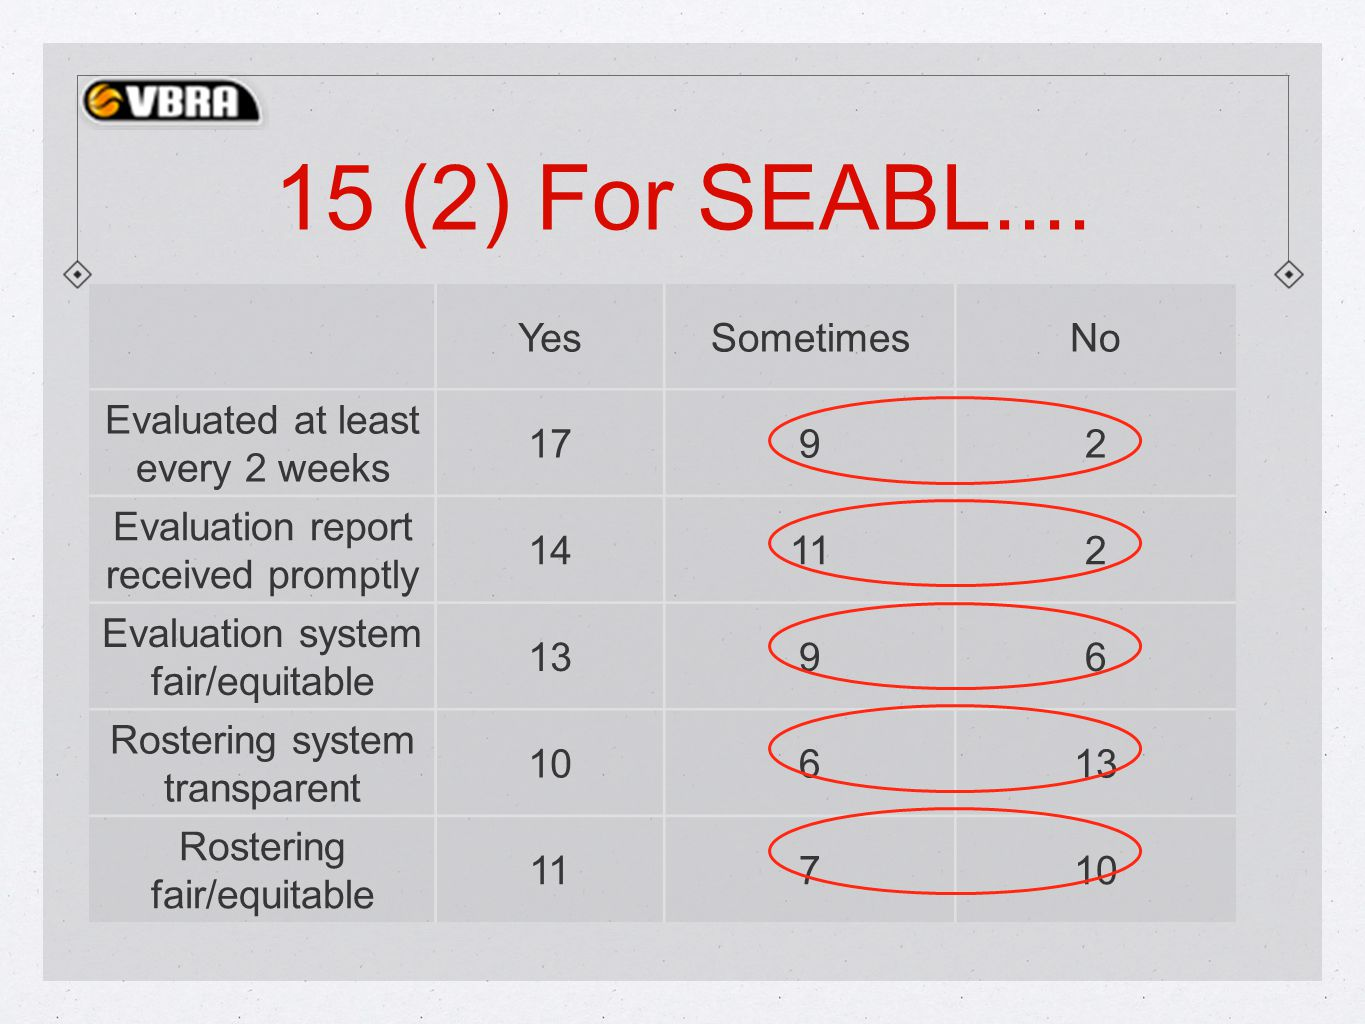 15 (2) For SEABL....